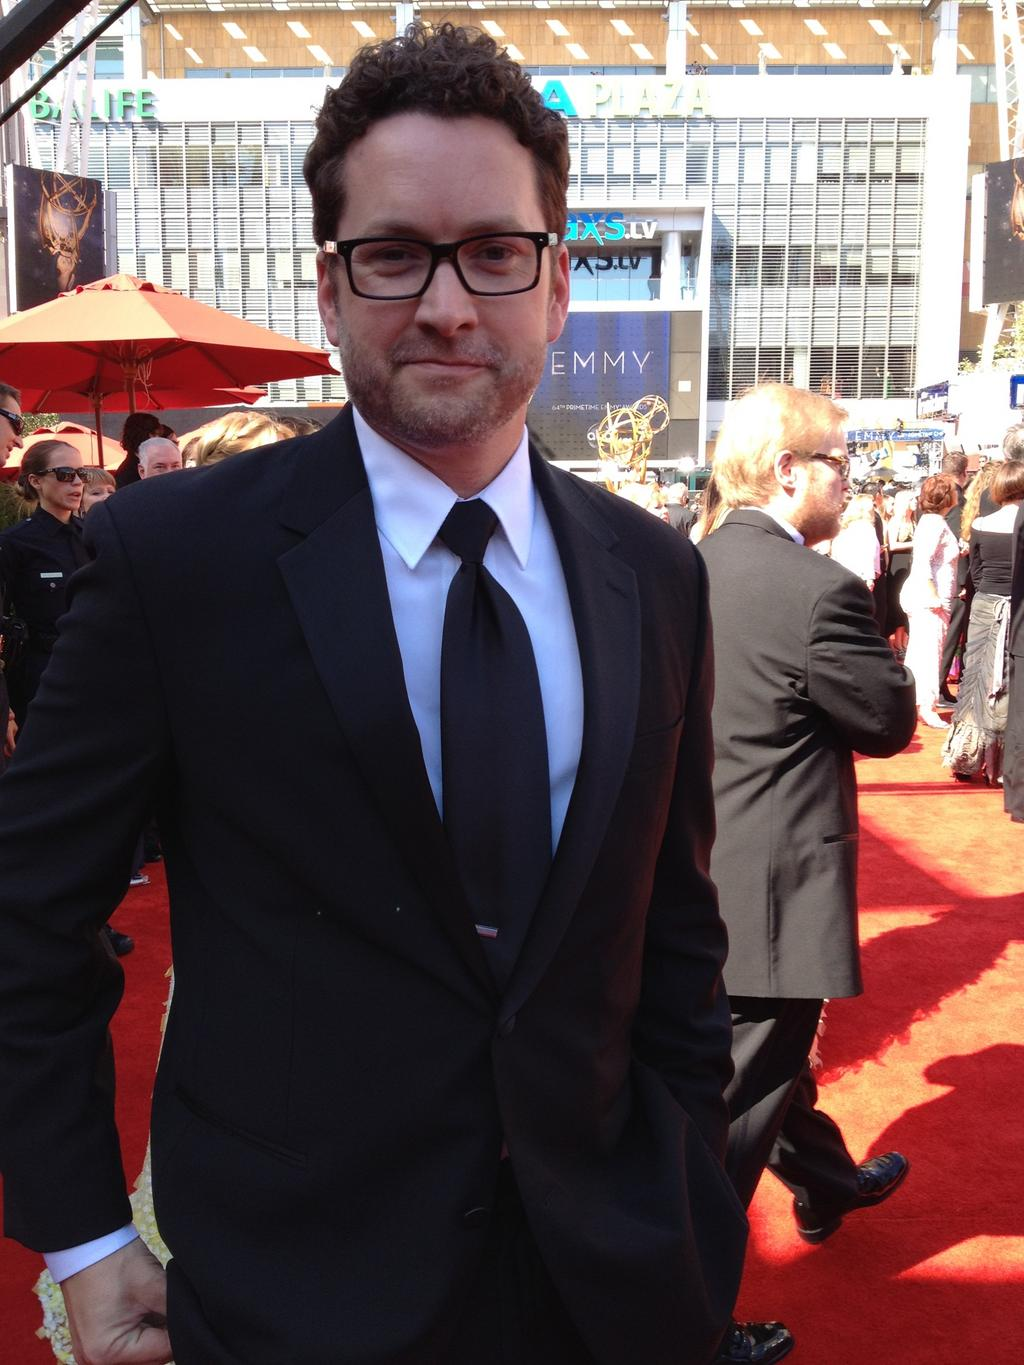 Burnie at Emmy Awards.jpeg